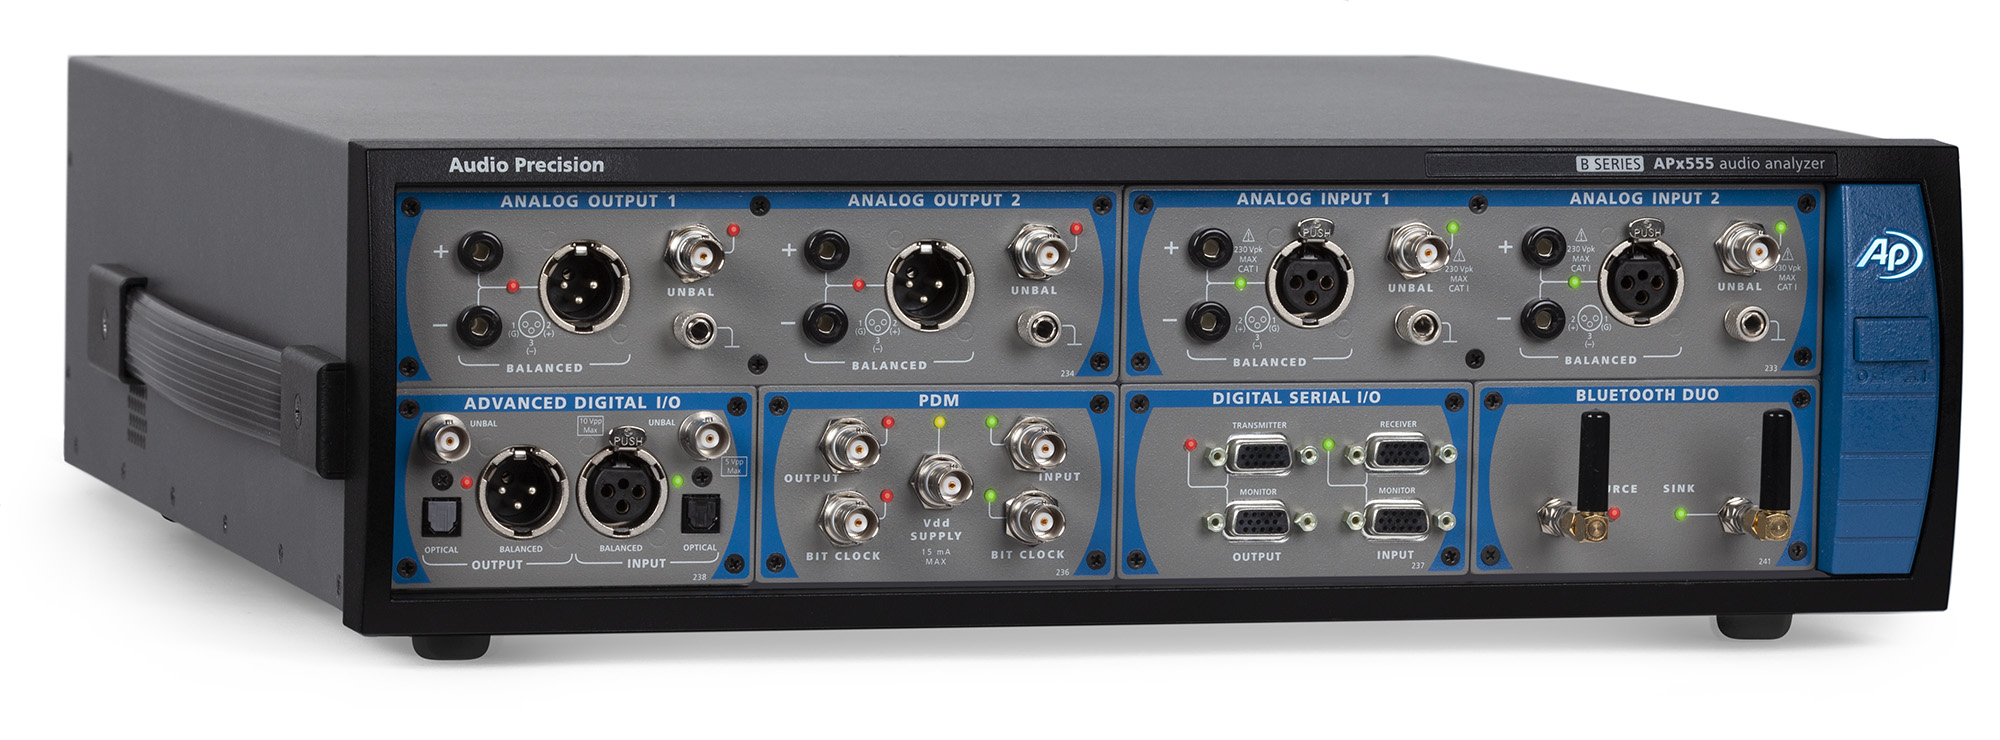 Audio Precision APx5550 B Series audio analyser front 3-4